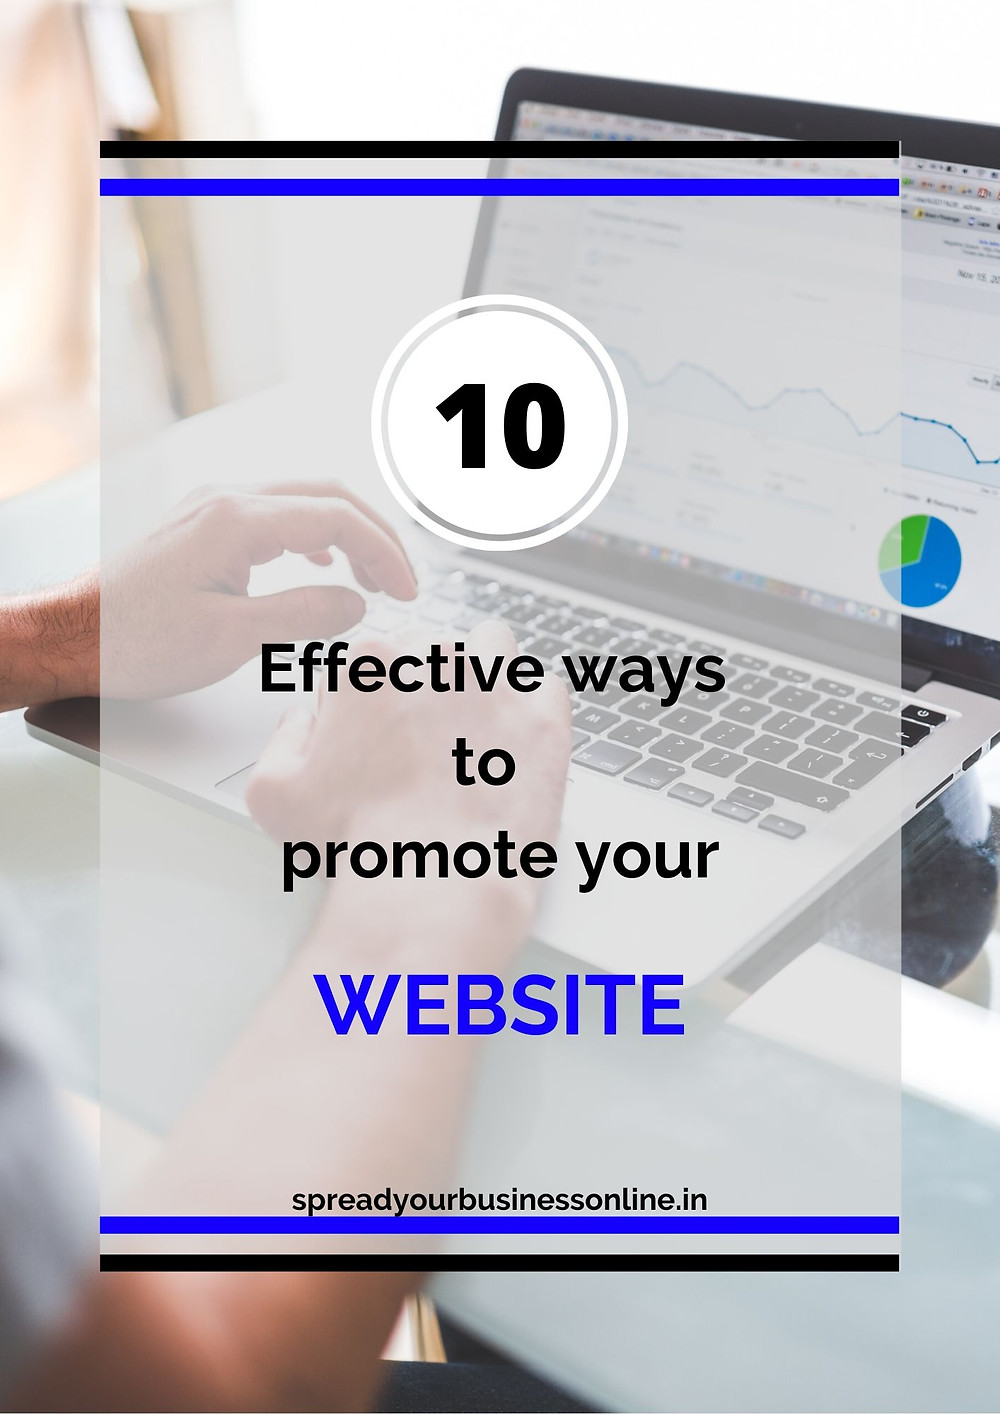 Somebody is checking website analytics on laptop: Powerful ways to promote your website